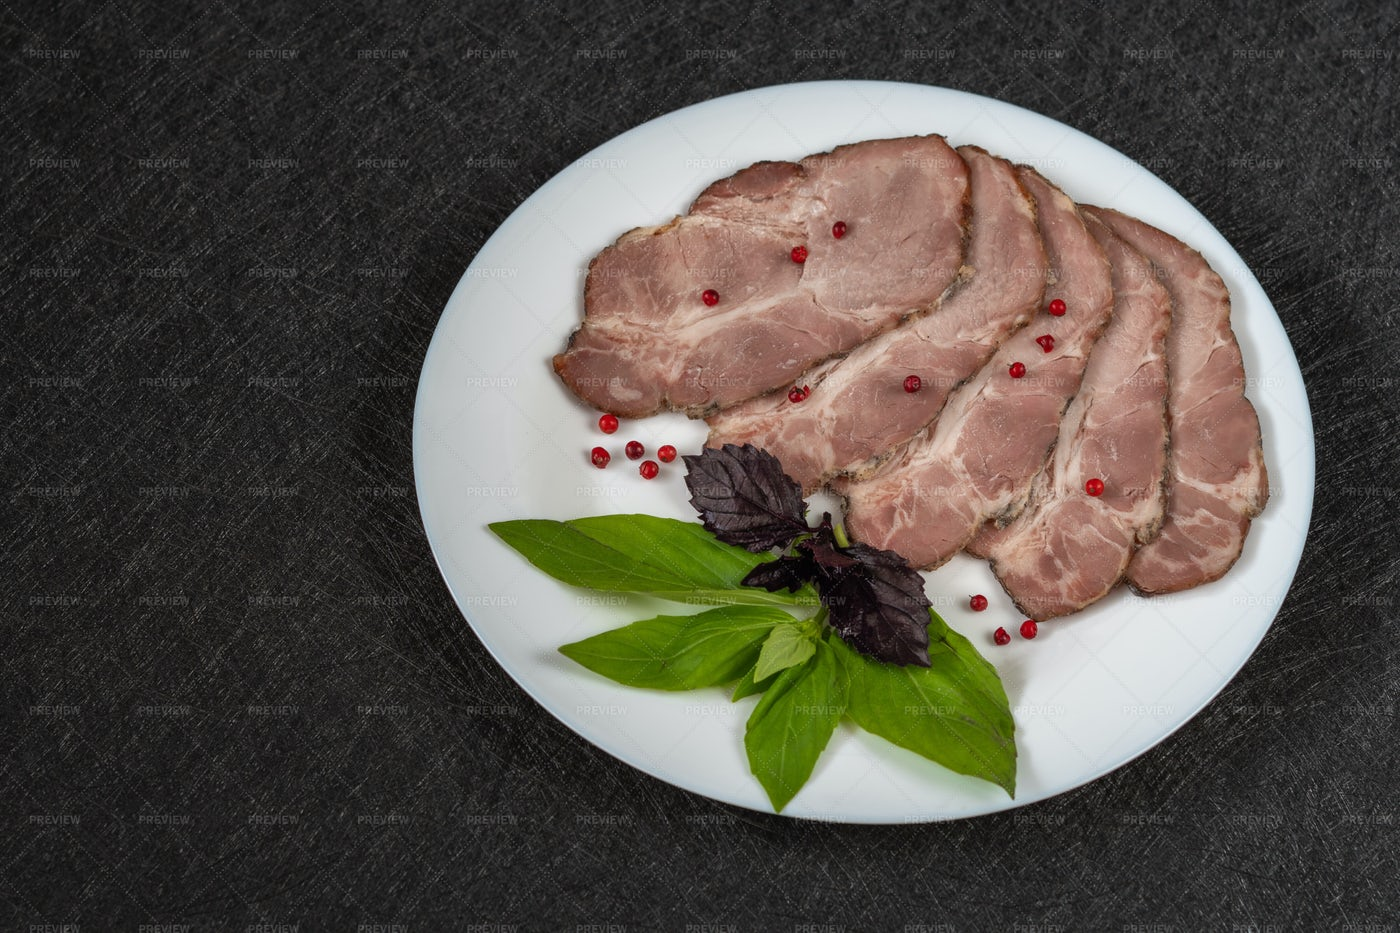 Baked Meat Cut Into Pieces: Stock Photos